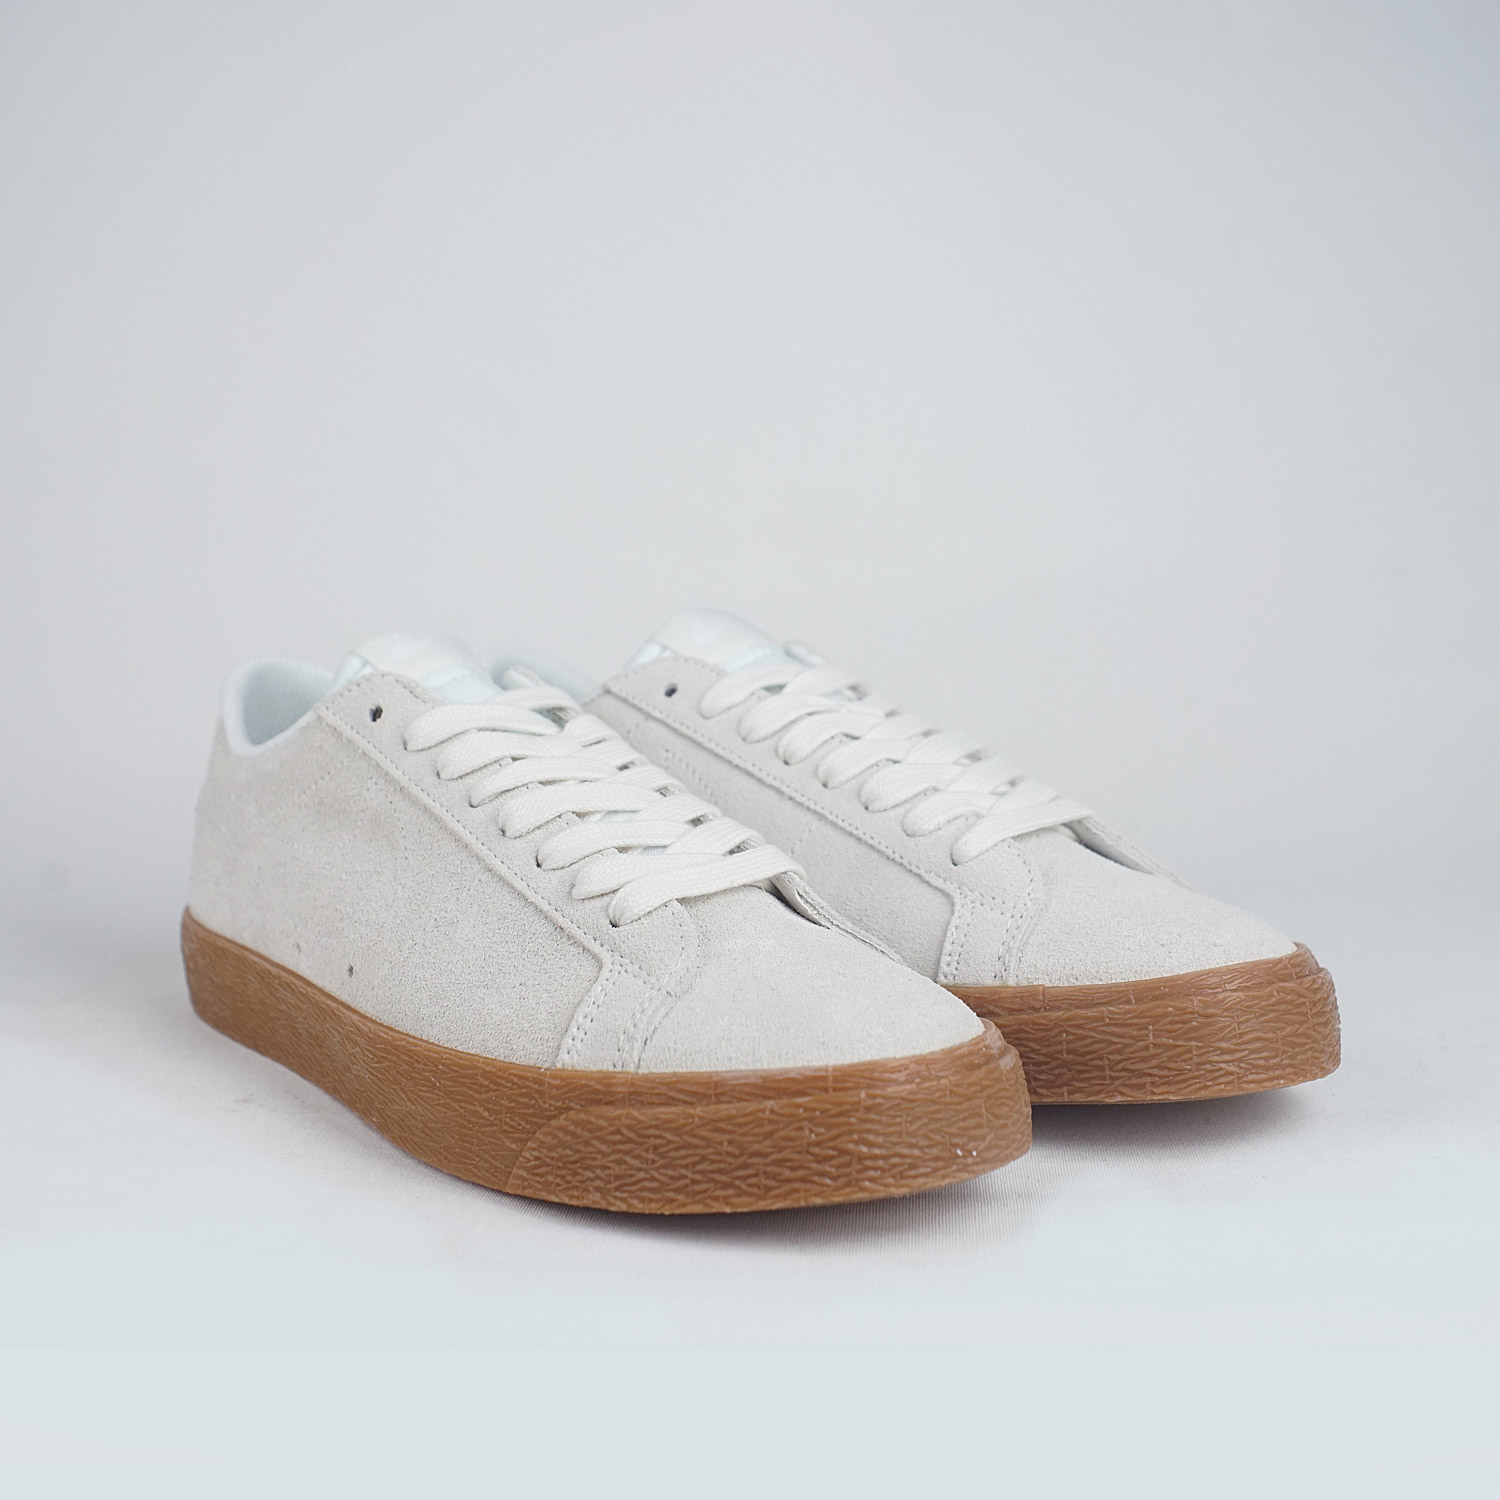 Buy nike blazer gum   up to 45% Discounts 1d5be30a1